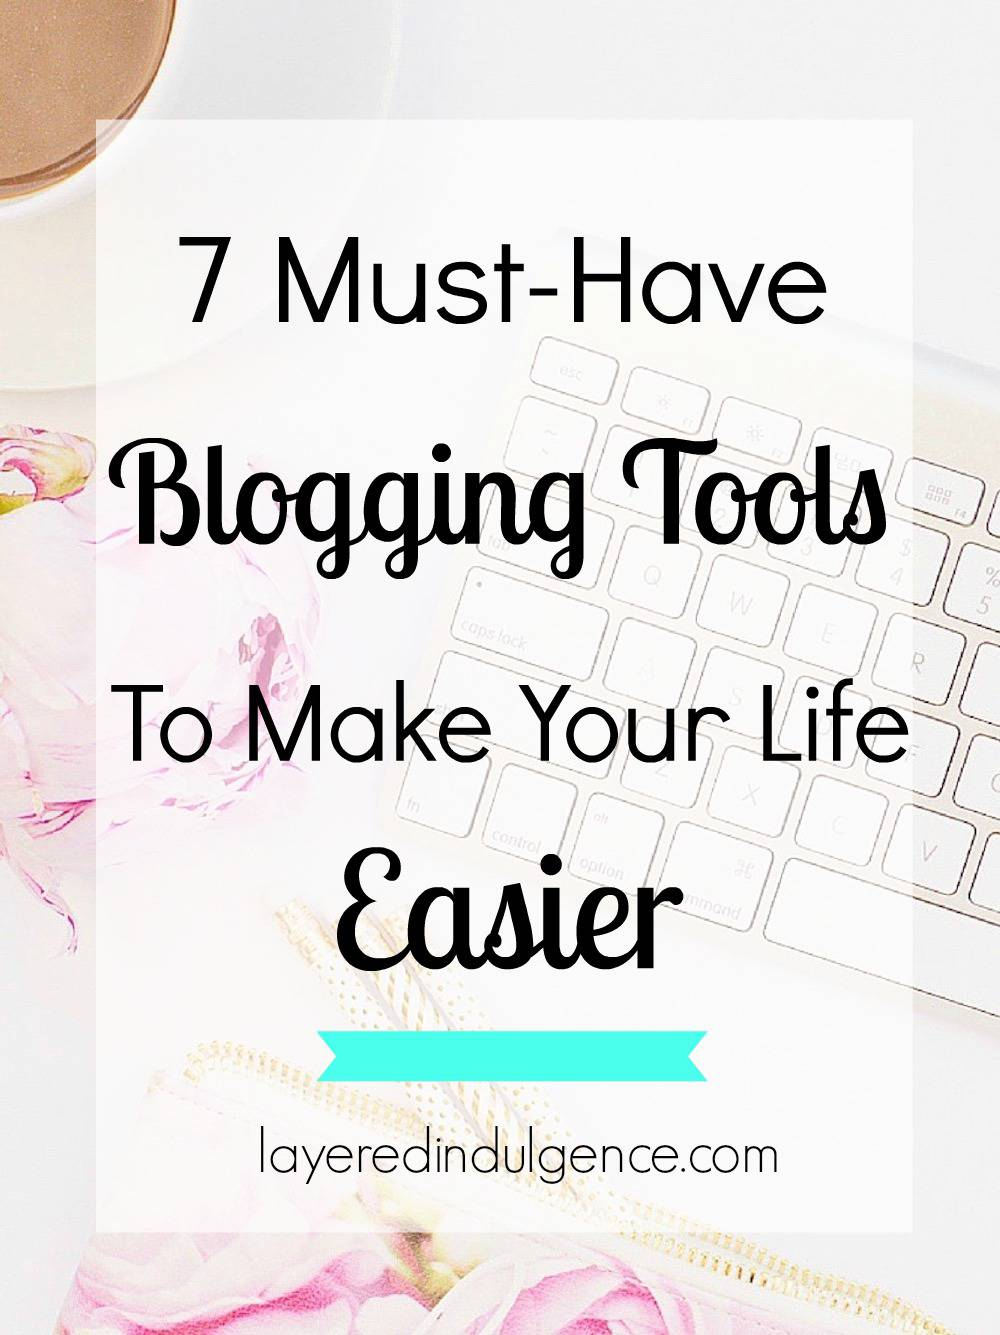 Being a blogger takes a whole lotta time! Luckily there are amazing blogging tools to help you with everything from social media scheduling to perfecting SEO for your blog posts, to website customization. Here are 7 blogger resources I love and how to use them!